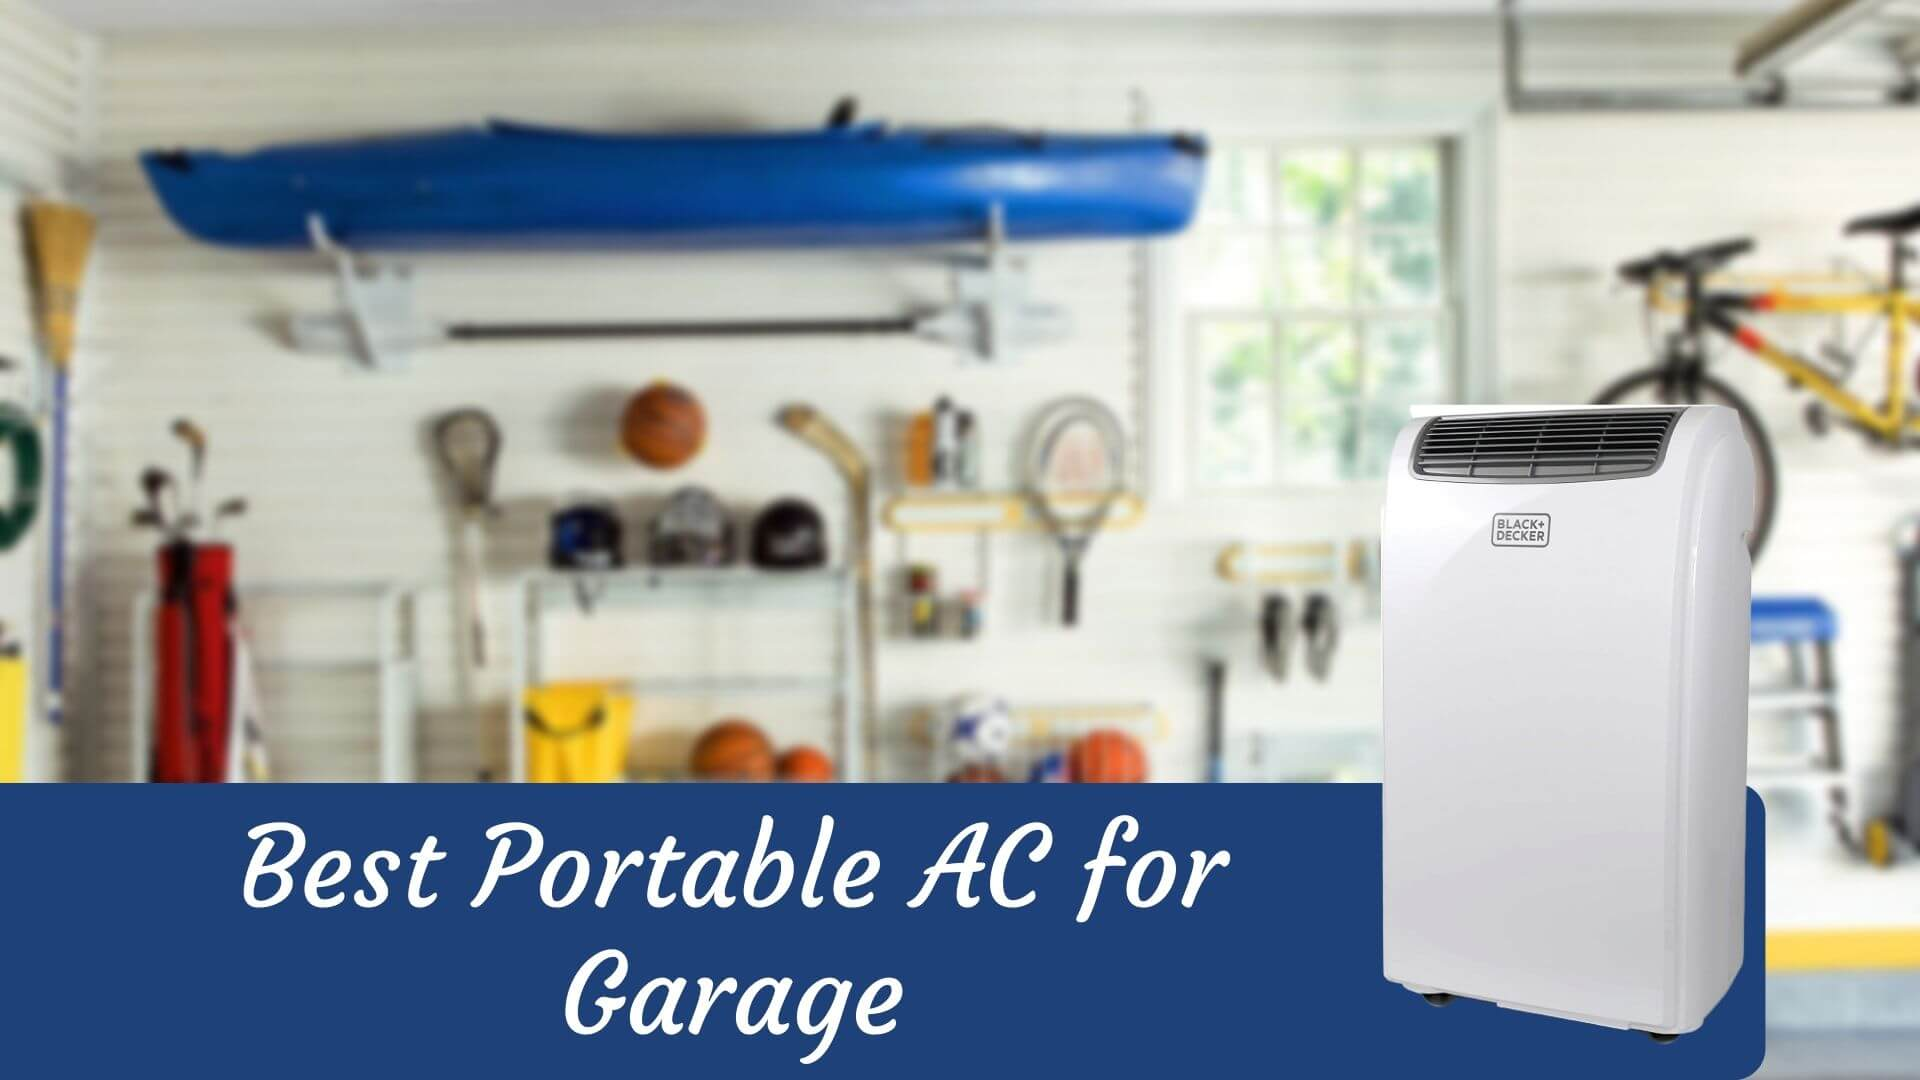 Best Portable AC for Garage - Top 5 Portable AC of 2020